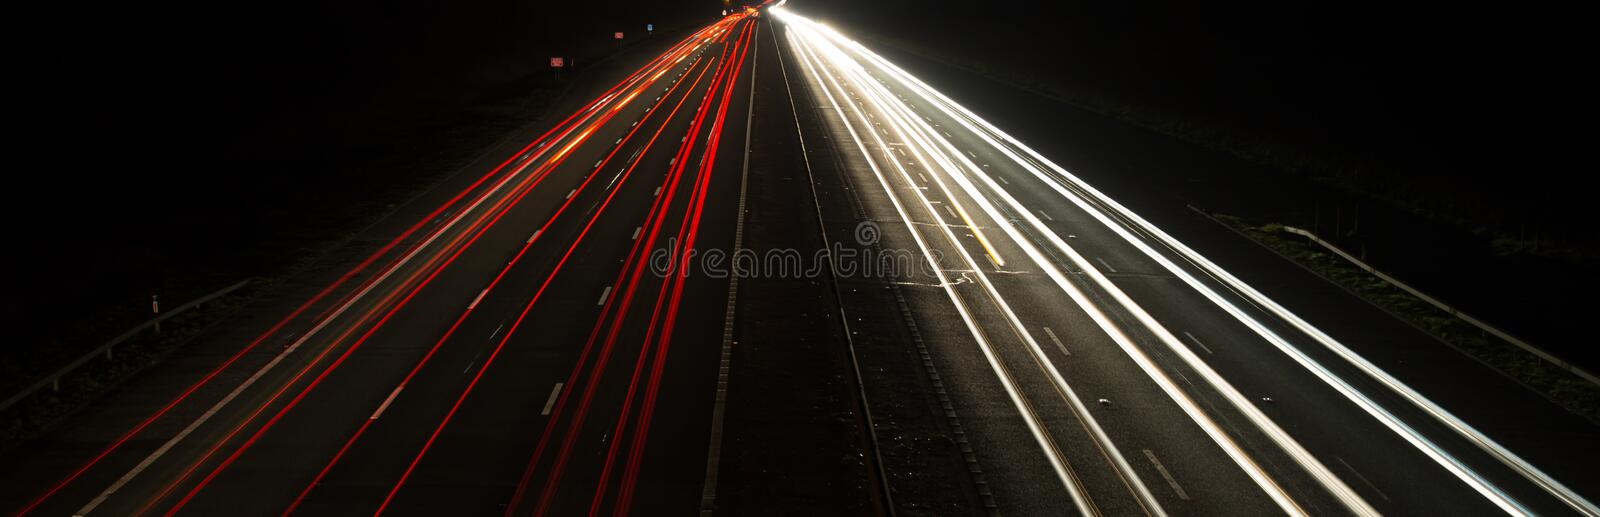 Download Vehicles at night stock image. Image of blur, blue, dark - 40187011